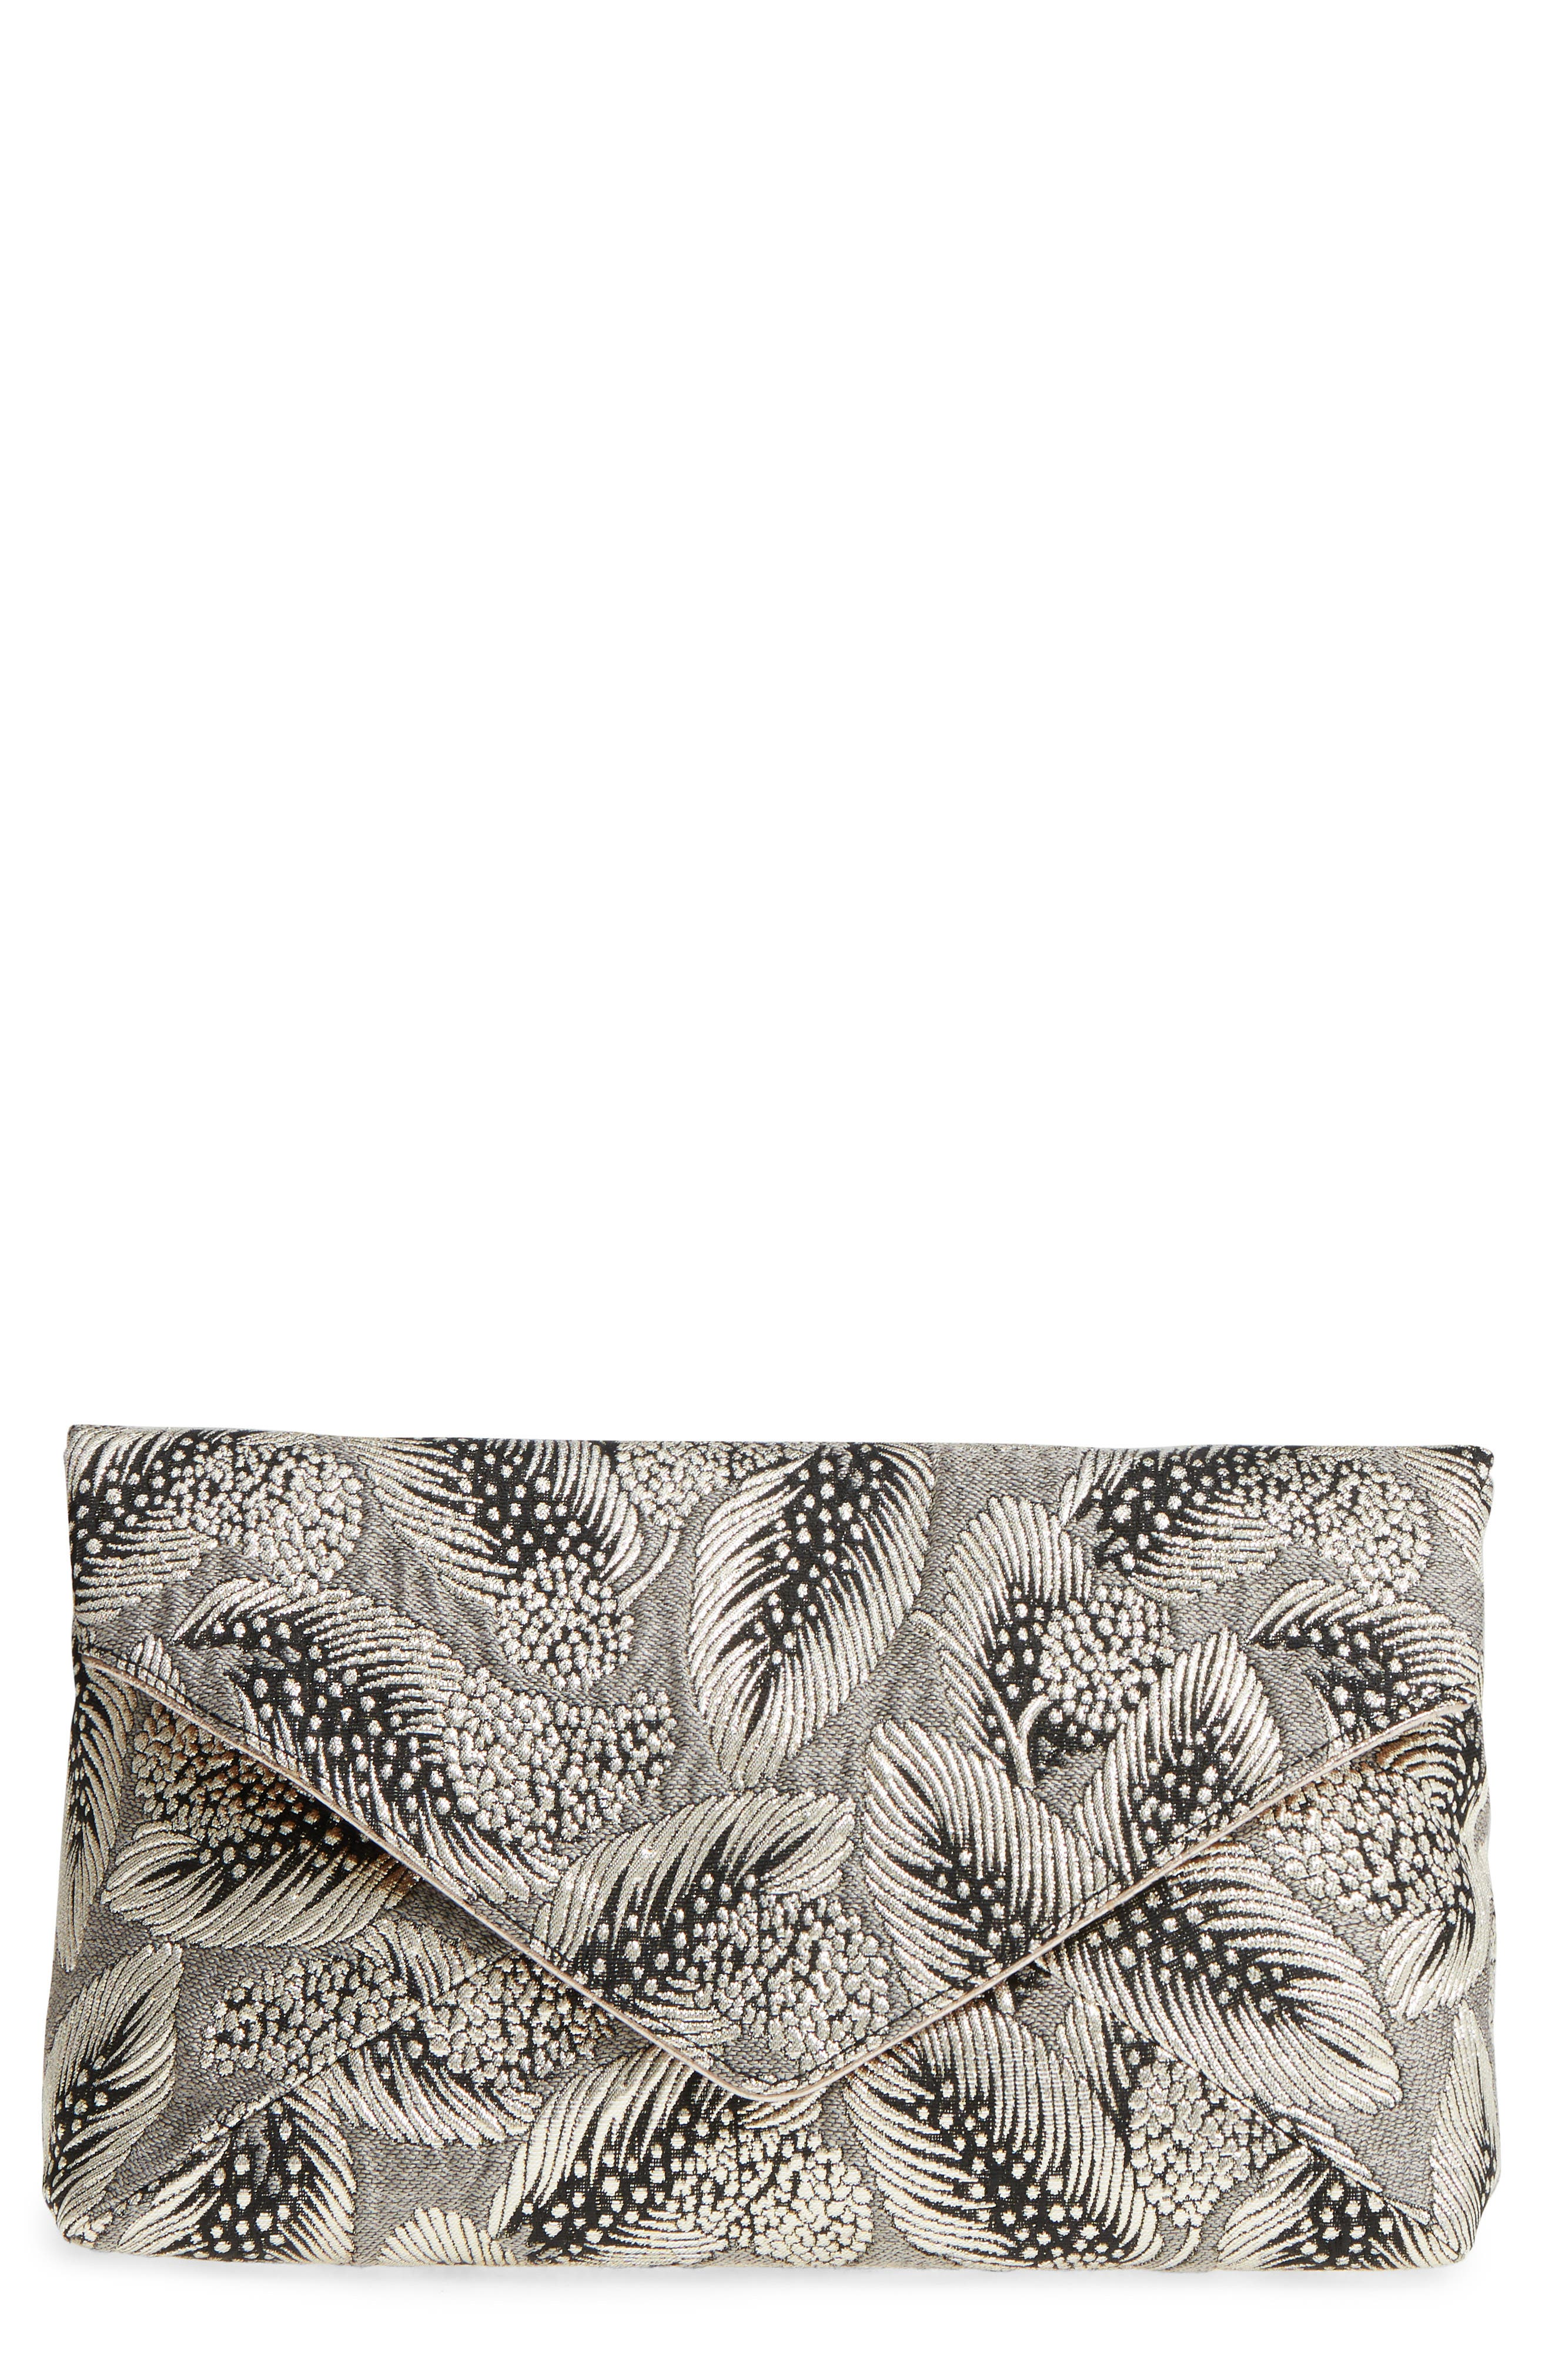 Dries Van Noten Metallic Feather Envelope Clutch